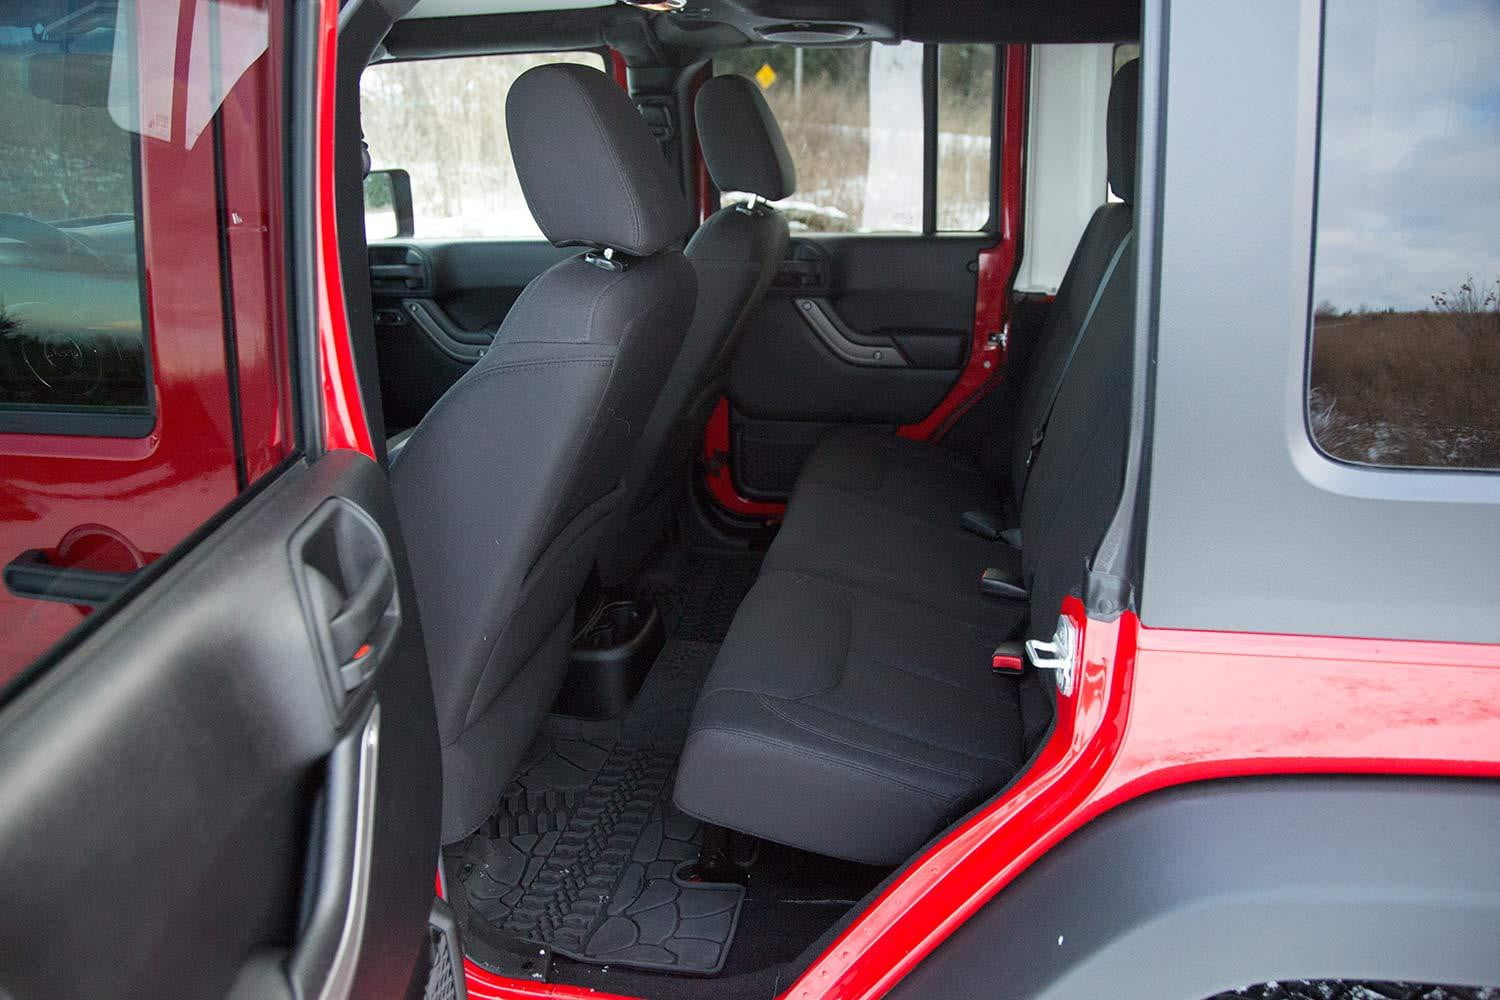 2015 jeep wrangler unlimited review digital trends - Jeep wrangler unlimited interior lights ...